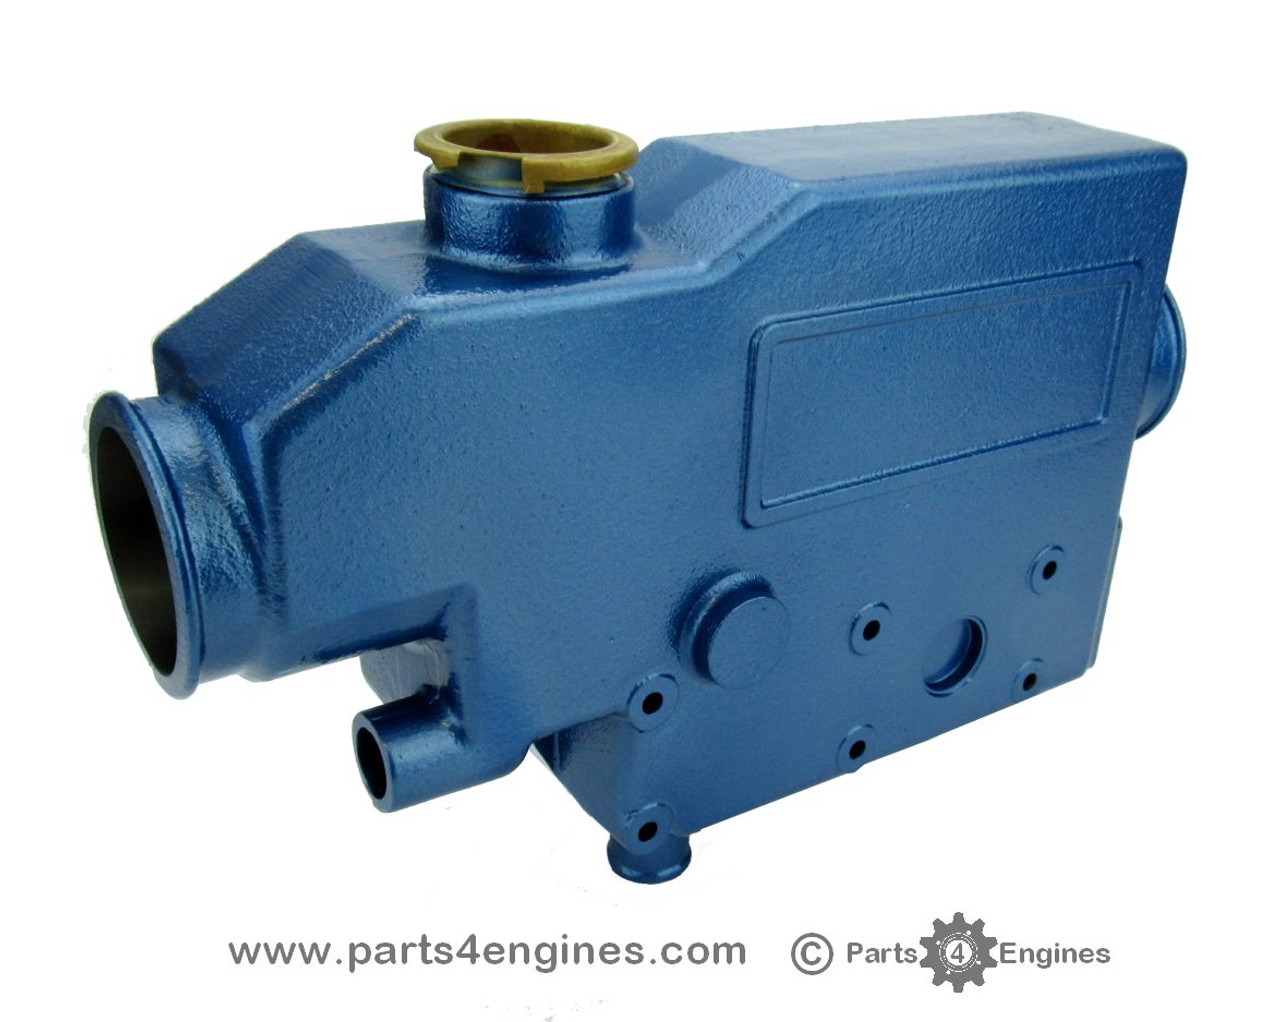 Perkins Perama M30 heat exchanger casing, from parts4engines.com